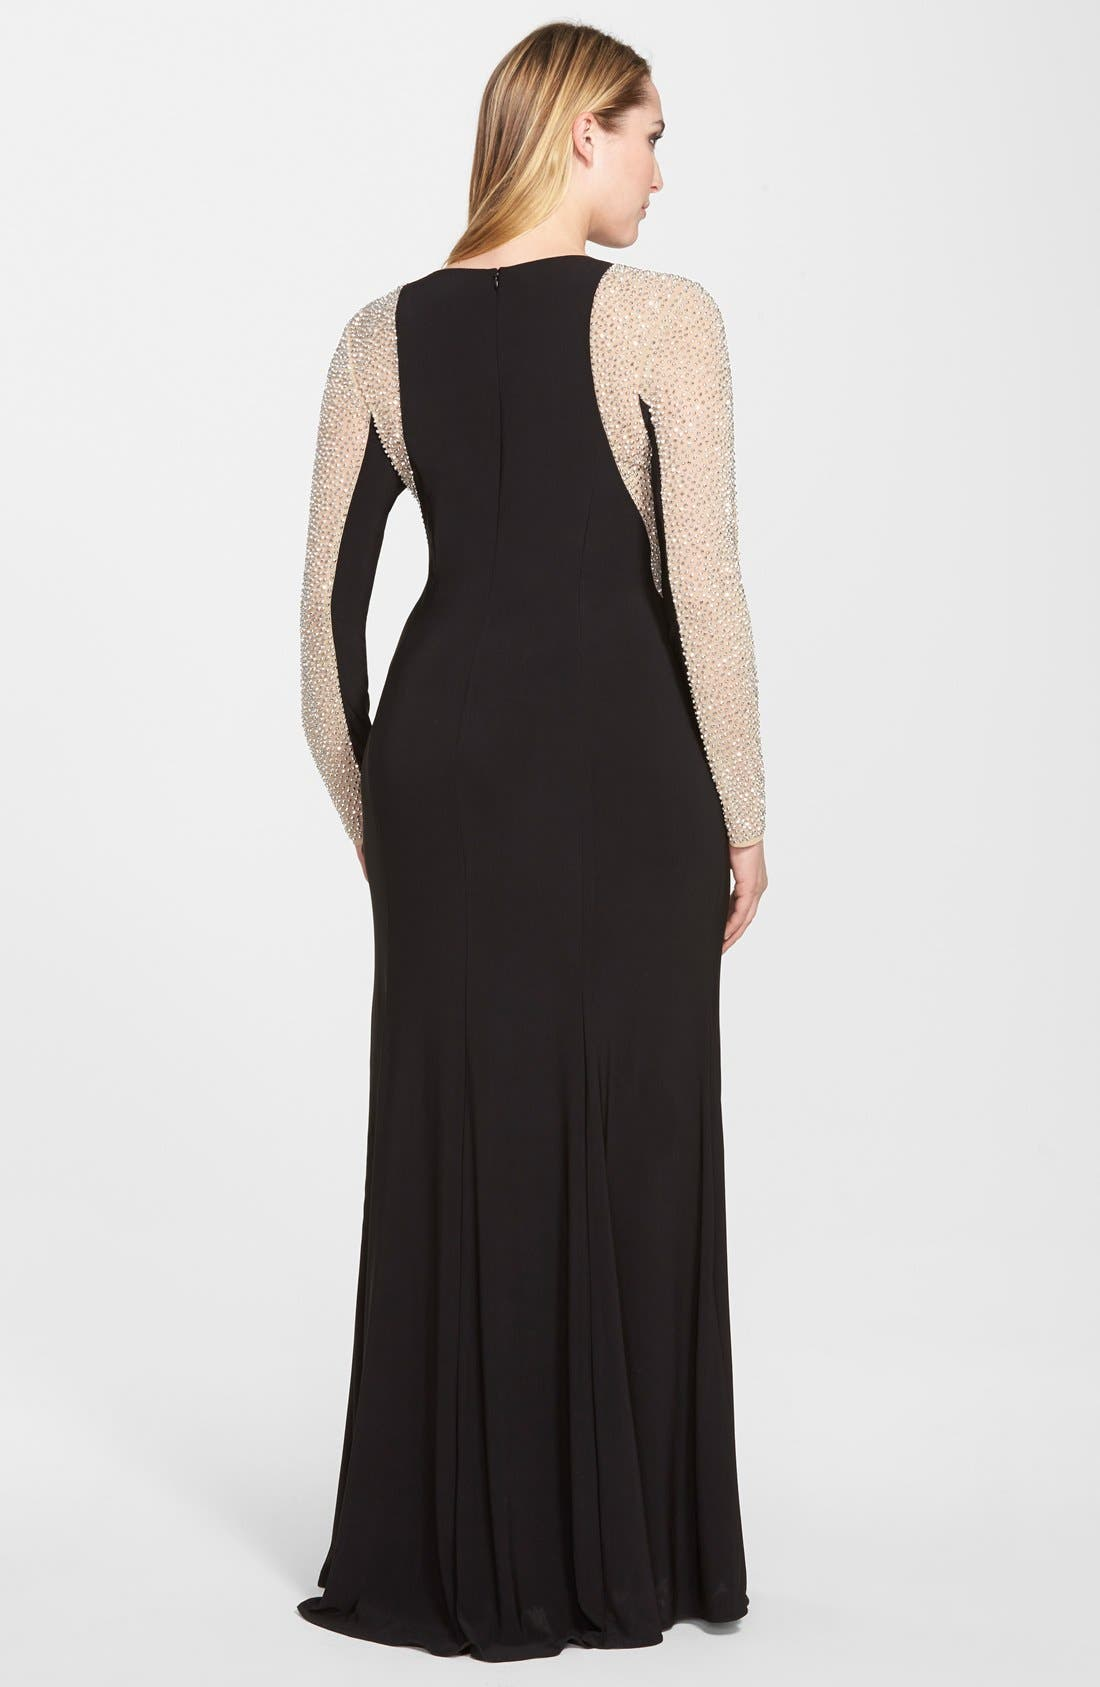 XSCAPE, Embellished Jersey Gown, Alternate thumbnail 8, color, BLACK/ NUDE/ SILVER